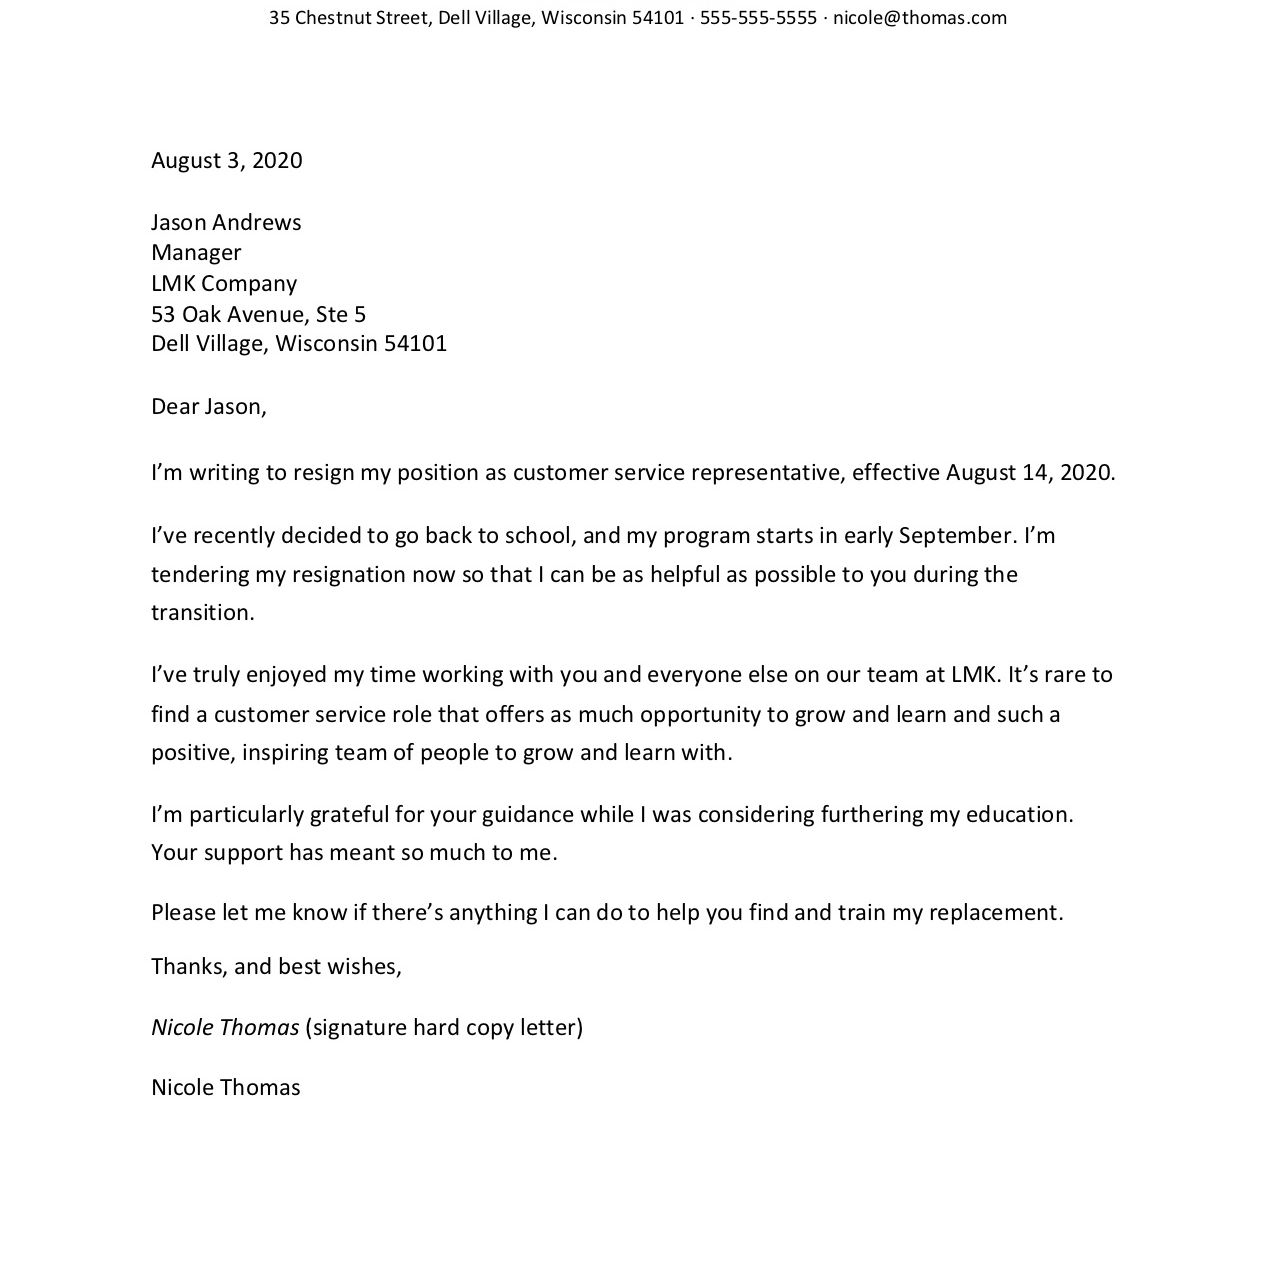 Microsoft Word Business Letter Templates from www.thebalancecareers.com